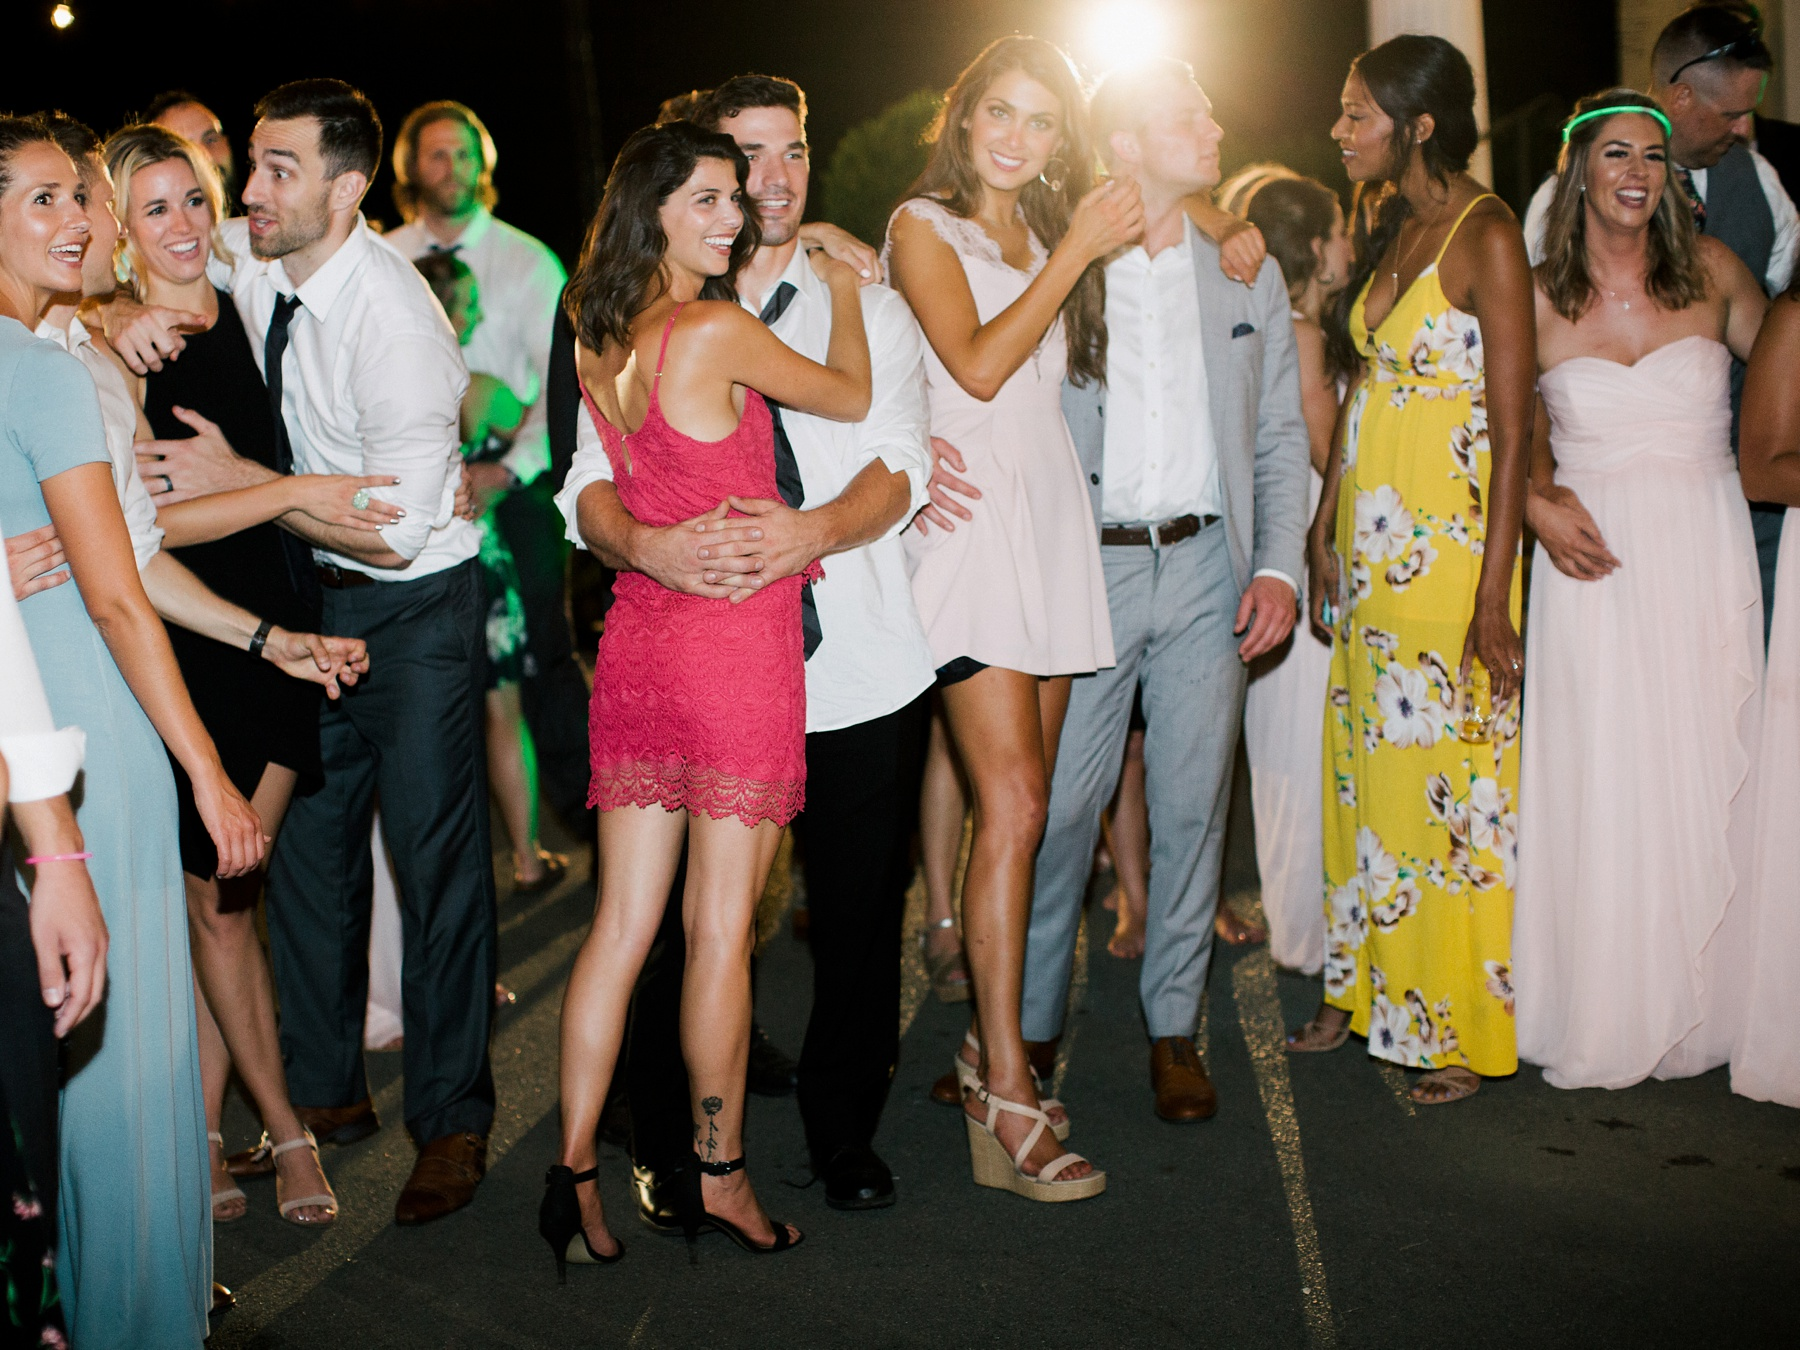 CMT Music City Jessica Mack and Andreas Plackis Wedding_1558.jpg